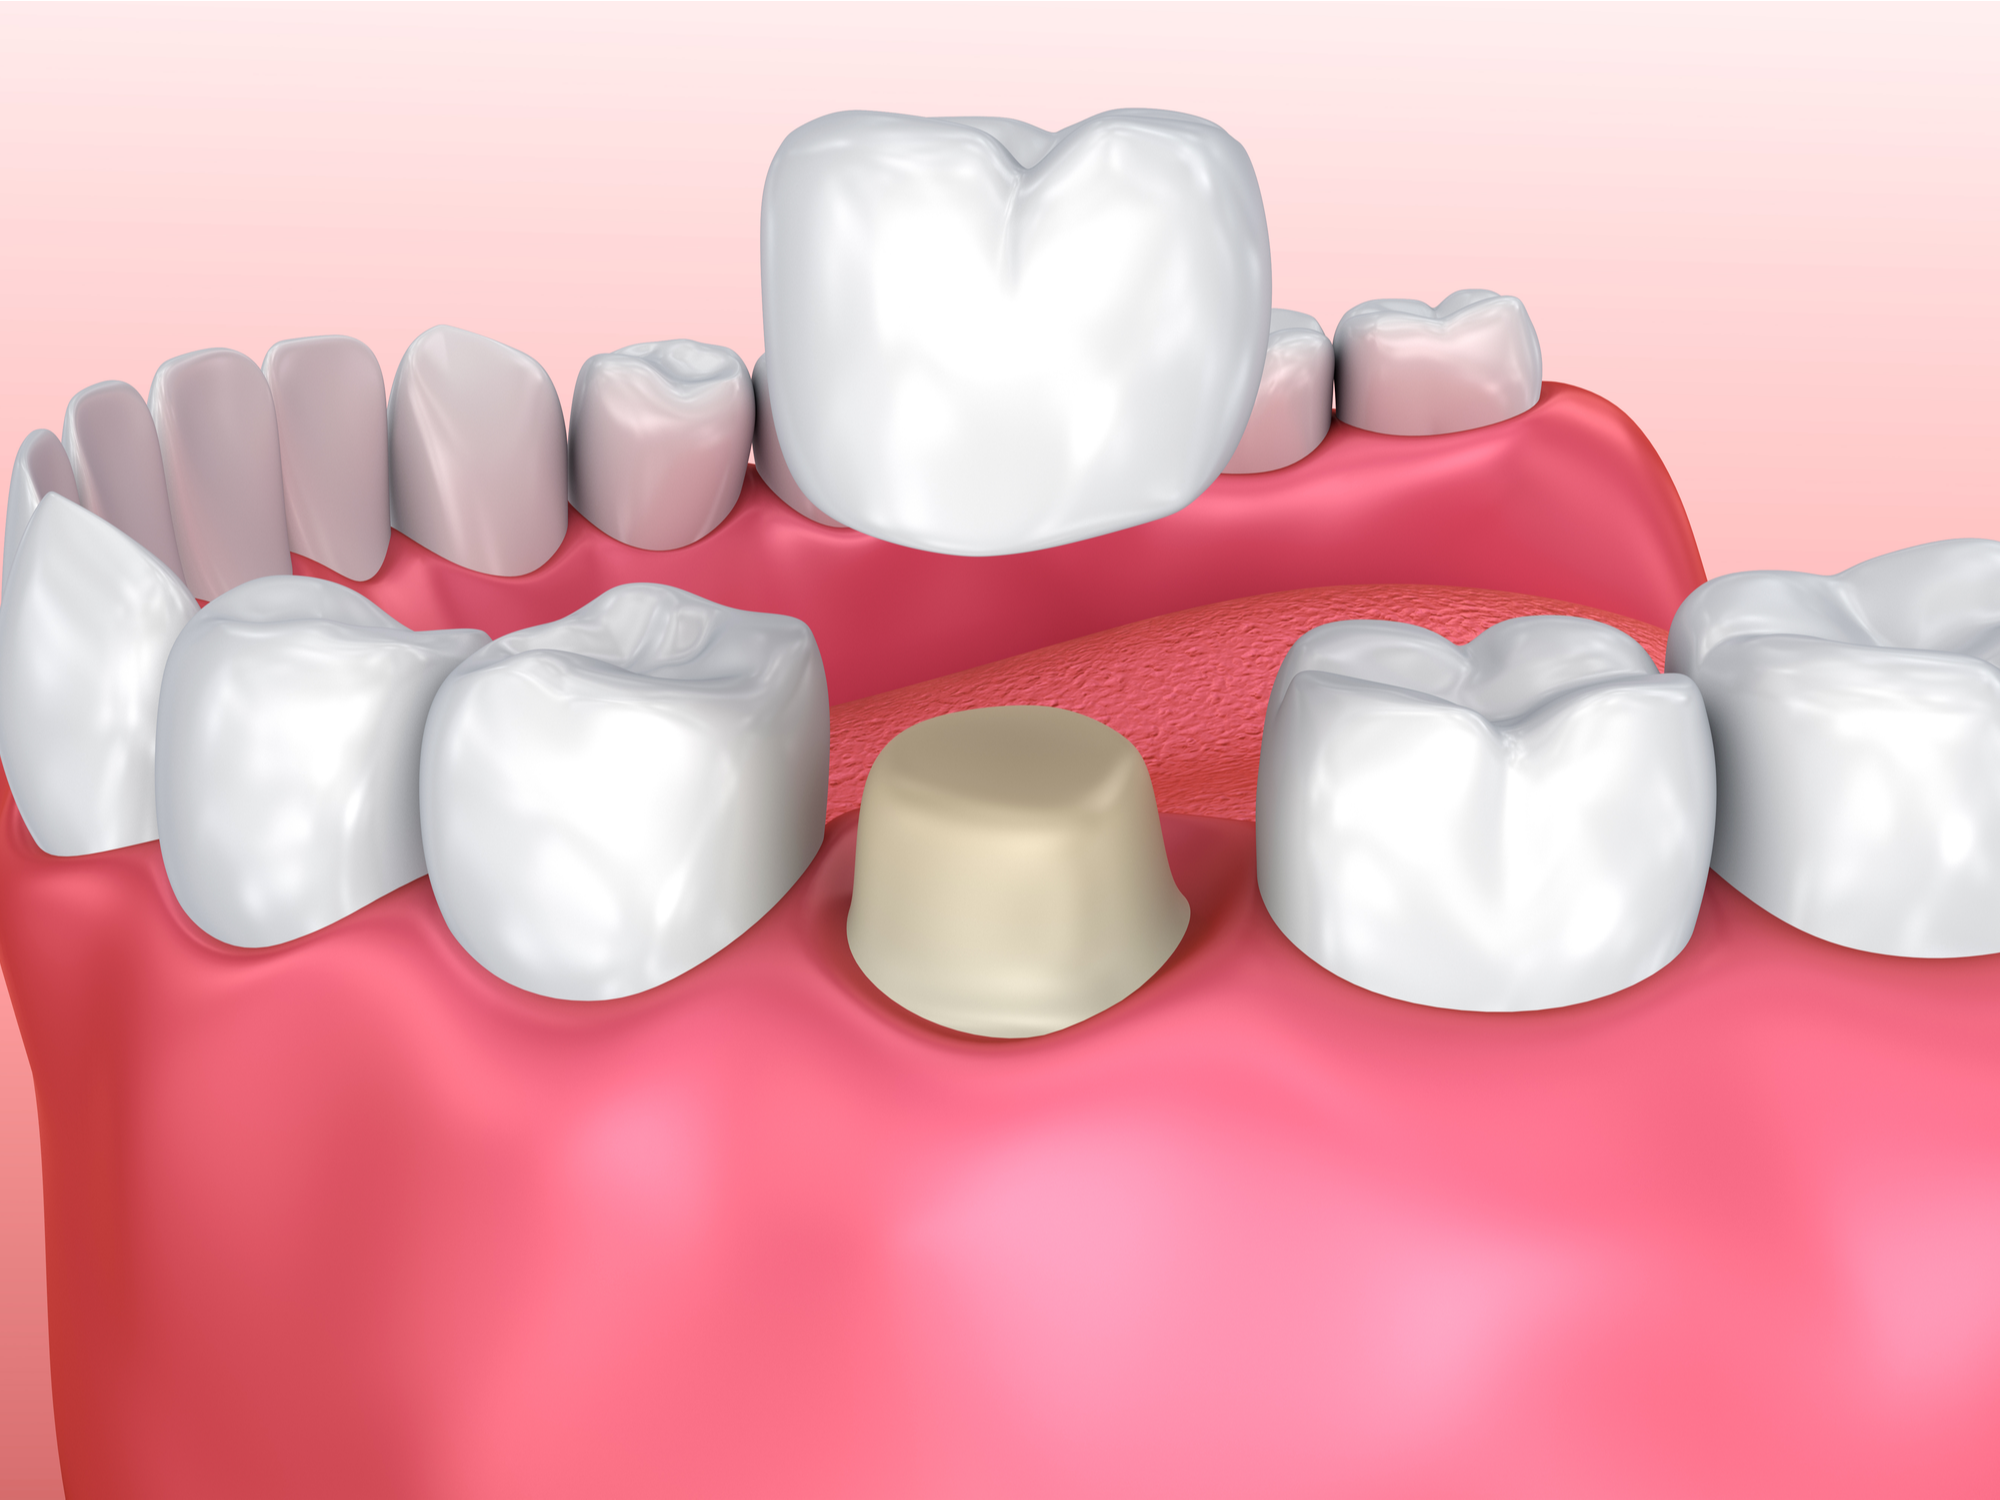 What You Should Know About Single Day Crowns